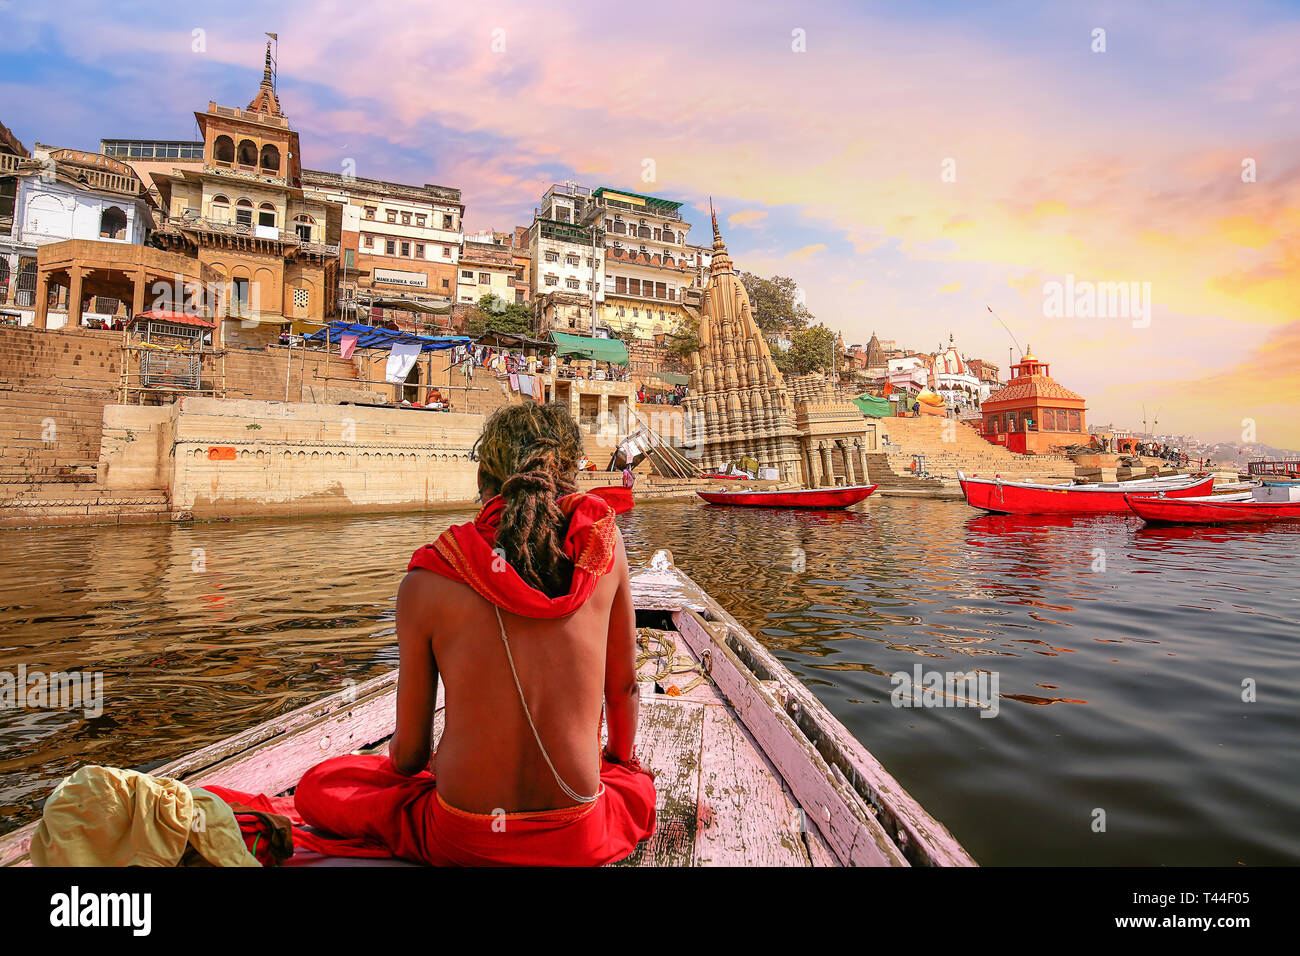 Varanasi city architecture with Ganges river bank at sunset with view of sadhu baba enjoying a boat ride on river Ganga. - Stock Image